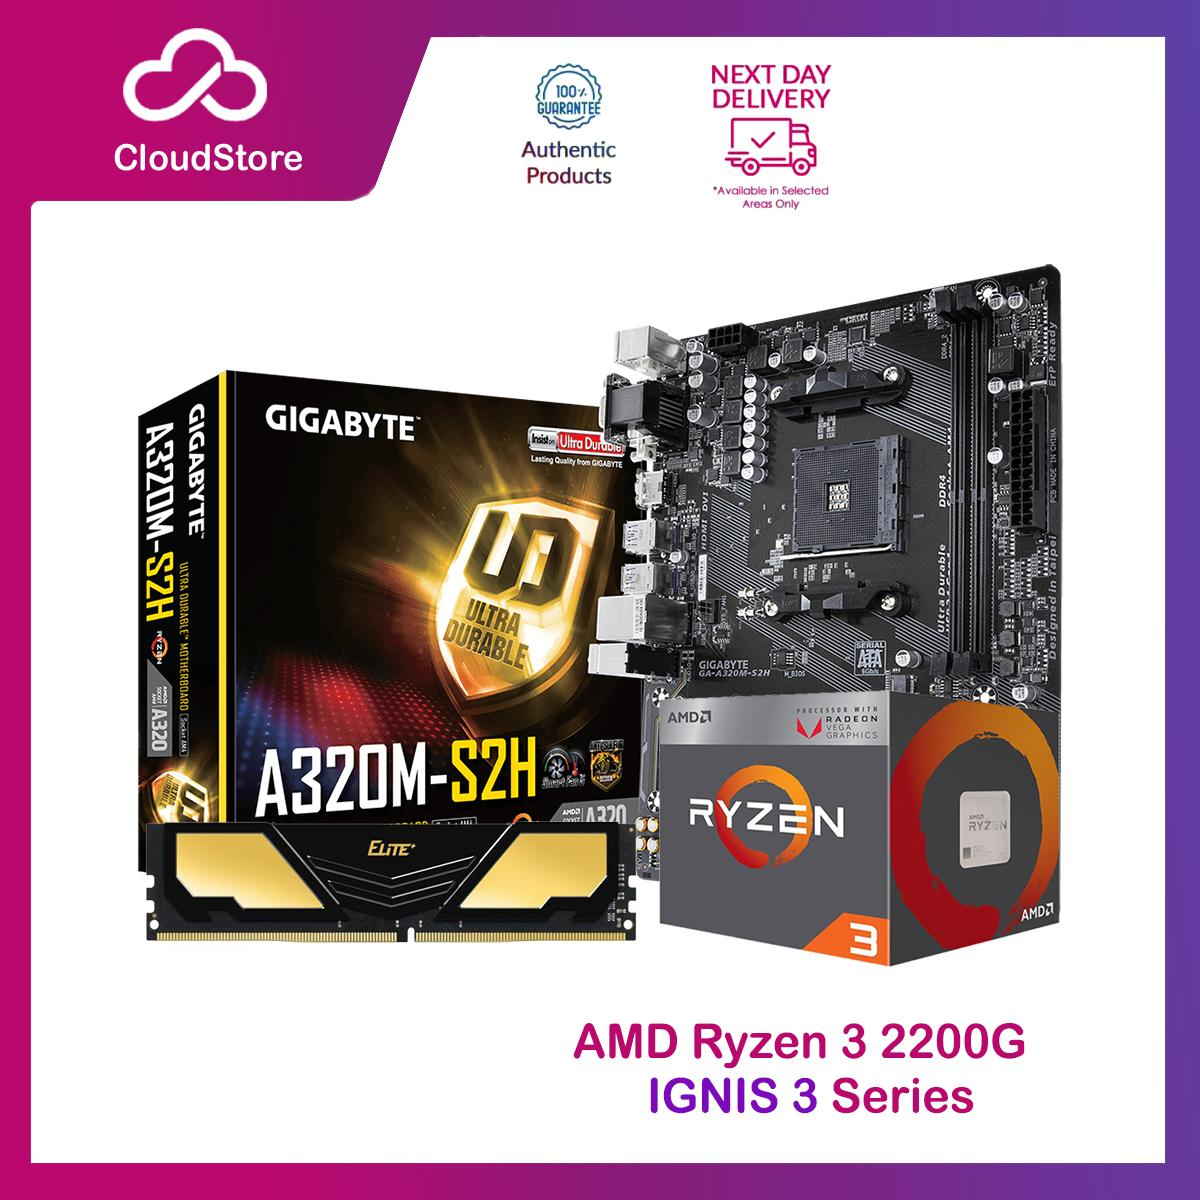 Amd Ryzen 3 2200G Processor Socket Am4 3 5ghz with Radeon Vega 8 Ryzen3 2nd  Gen APU, Best Seller for iCafe Gamers Graphic Artist with Built in Video